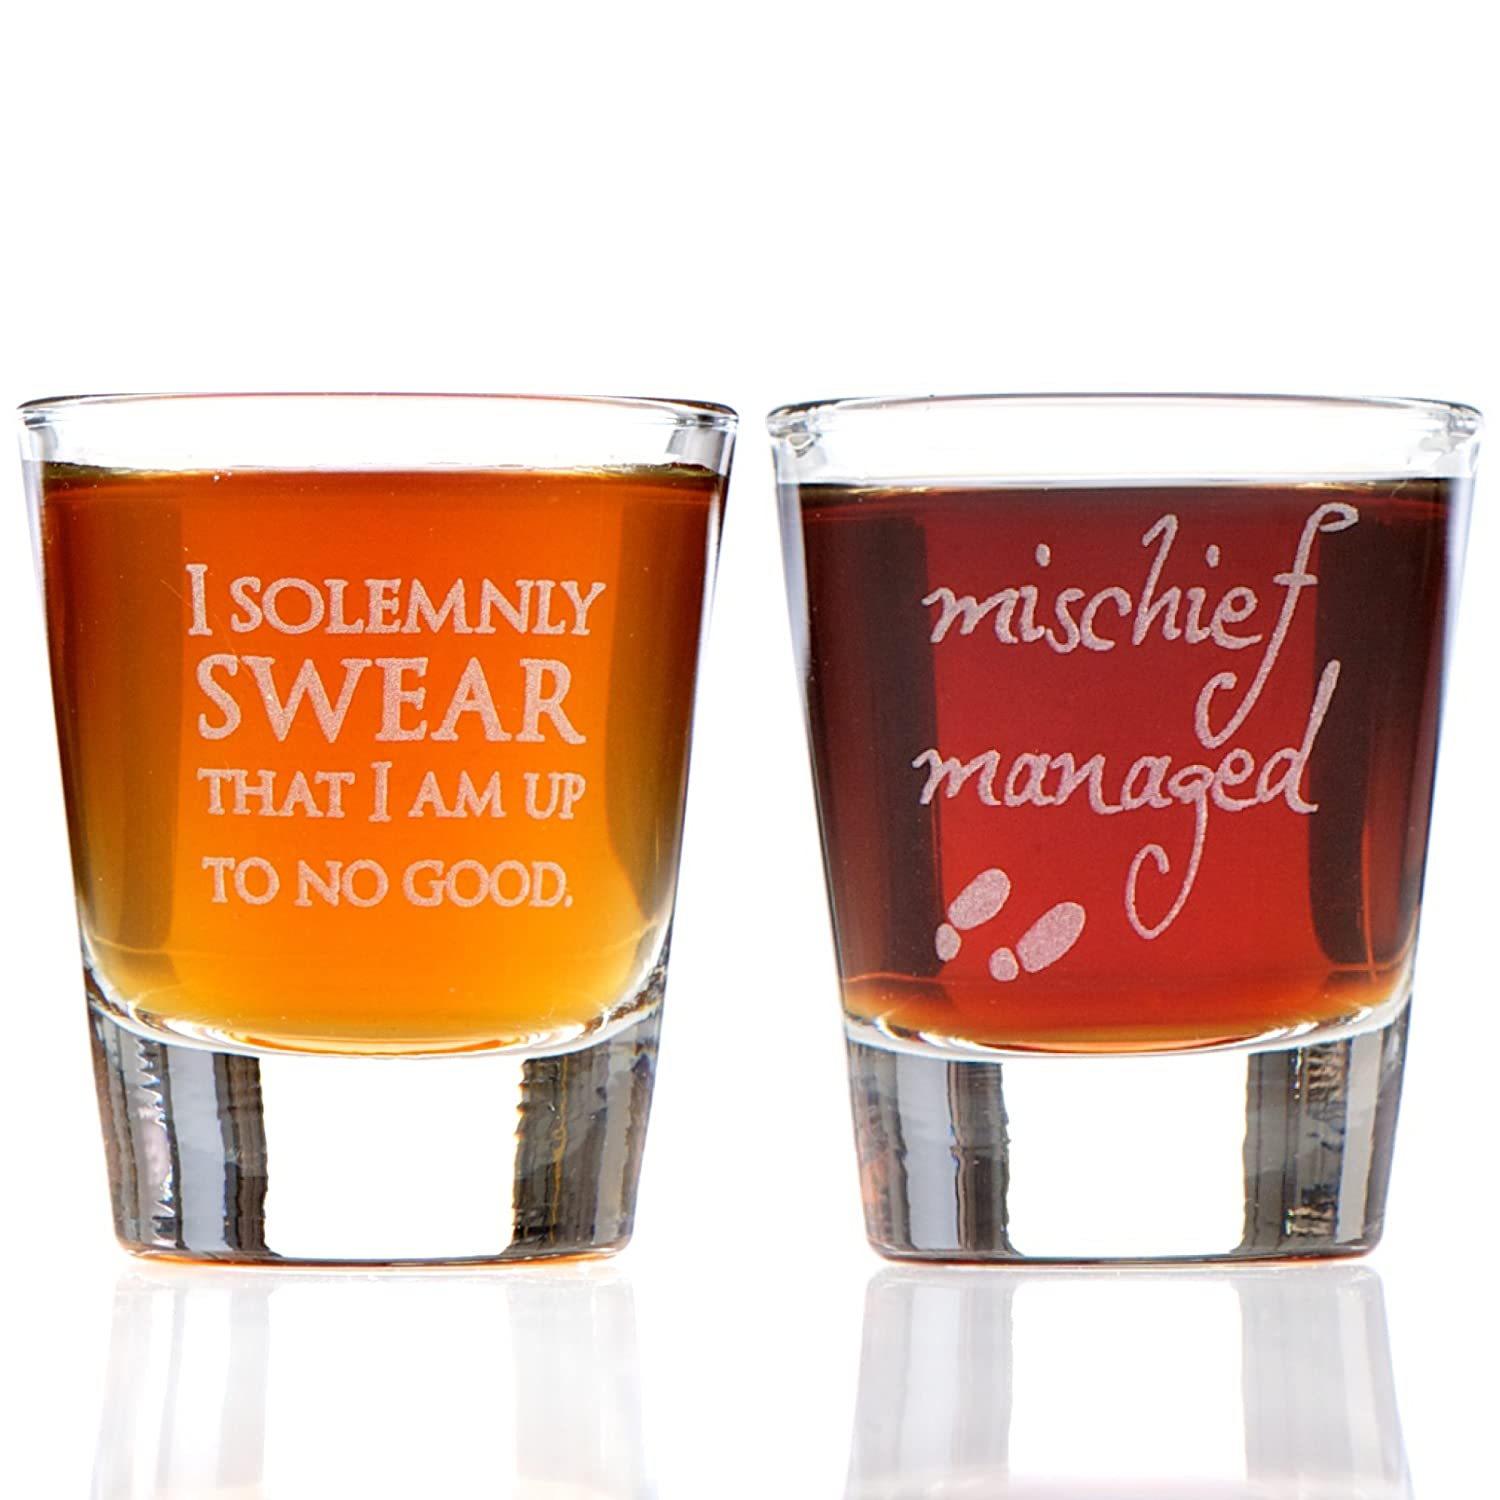 I Solemnly Swear That I am Up to No Good & Mischief Managed: Marauder's Map Inspired Shot Glass Set Alder House Market